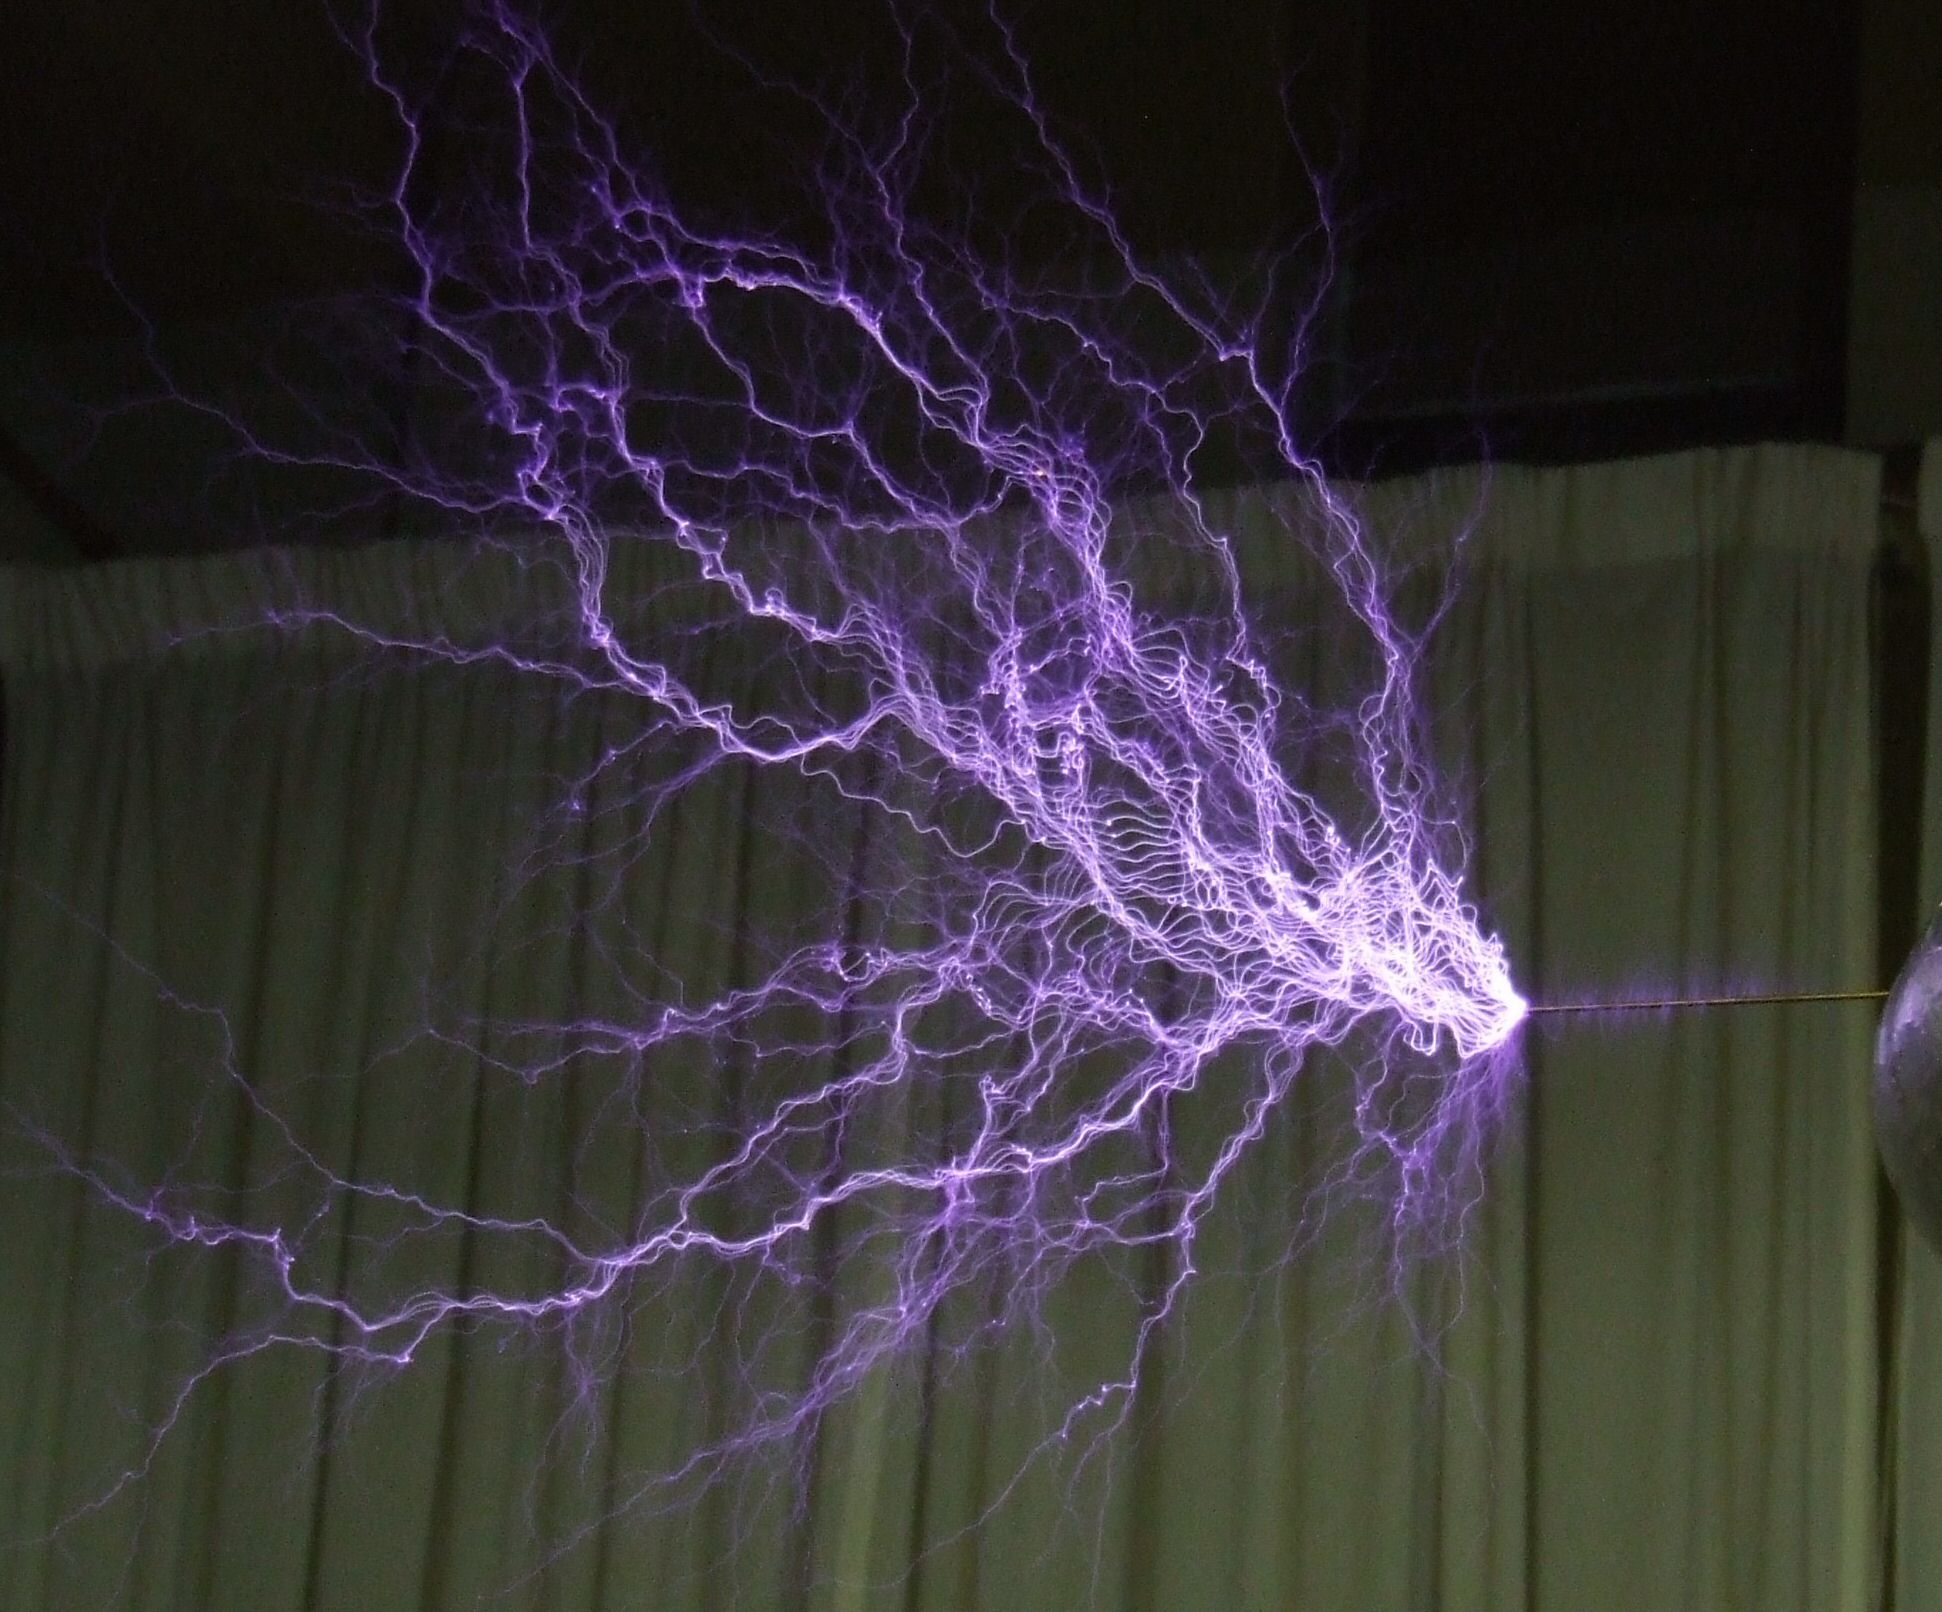 https://upload.wikimedia.org/wikipedia/commons/c/c4/Tesla-coil-discharge.jpg